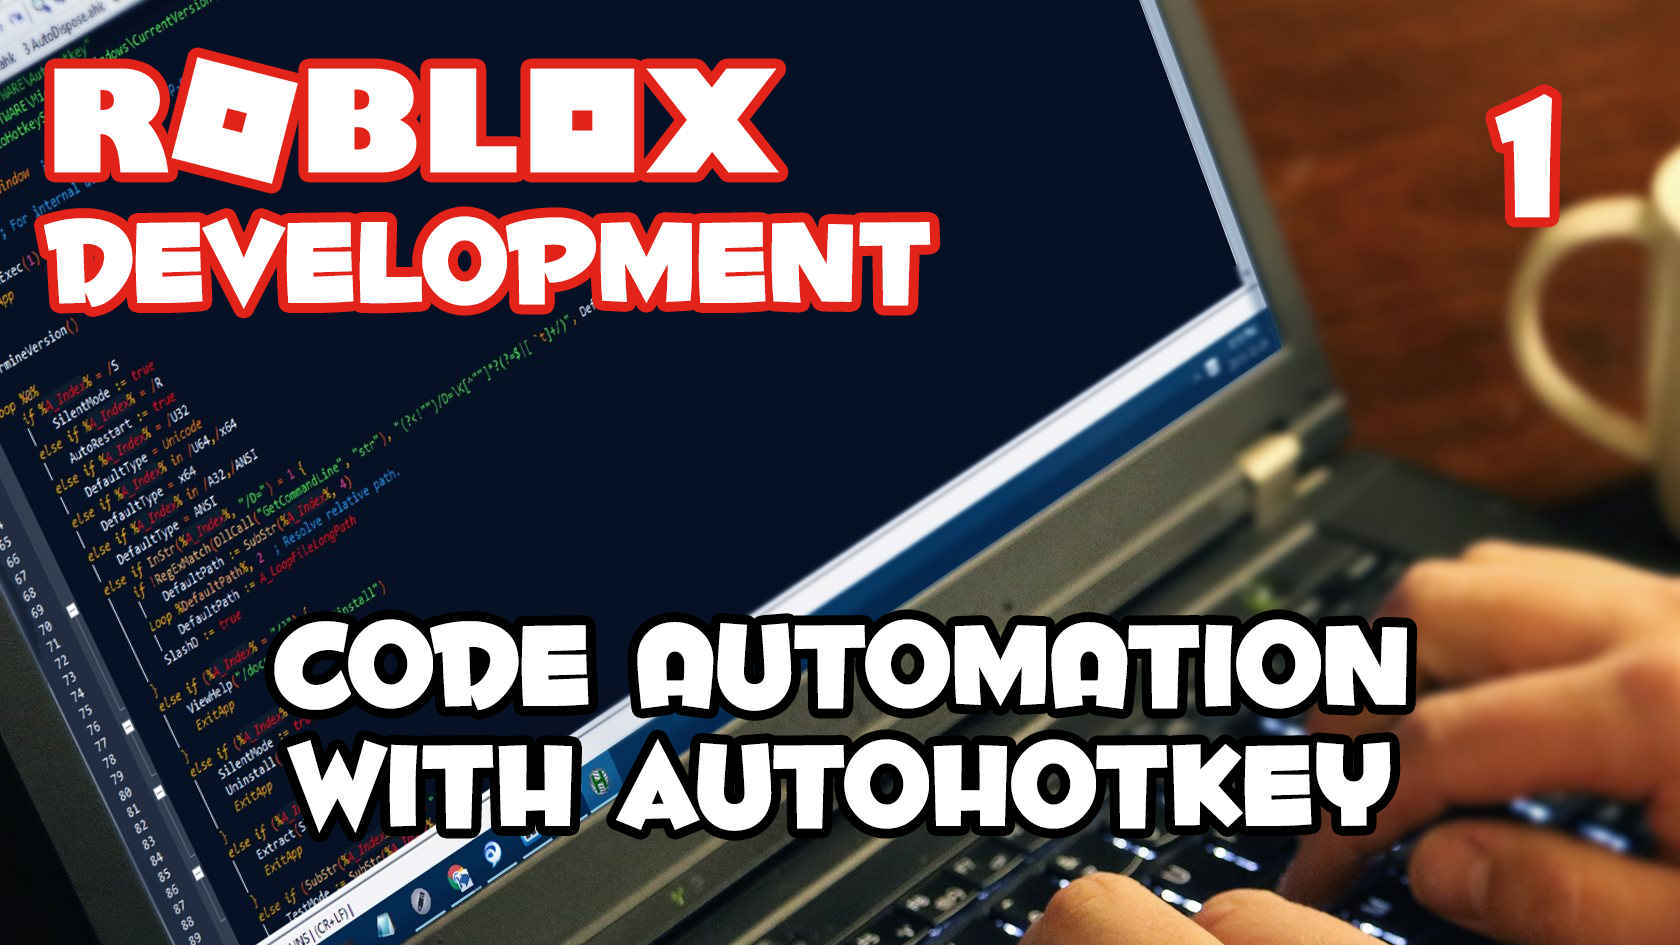 Roblox Code Automation with Lua Code Templates in Roblox Studio with